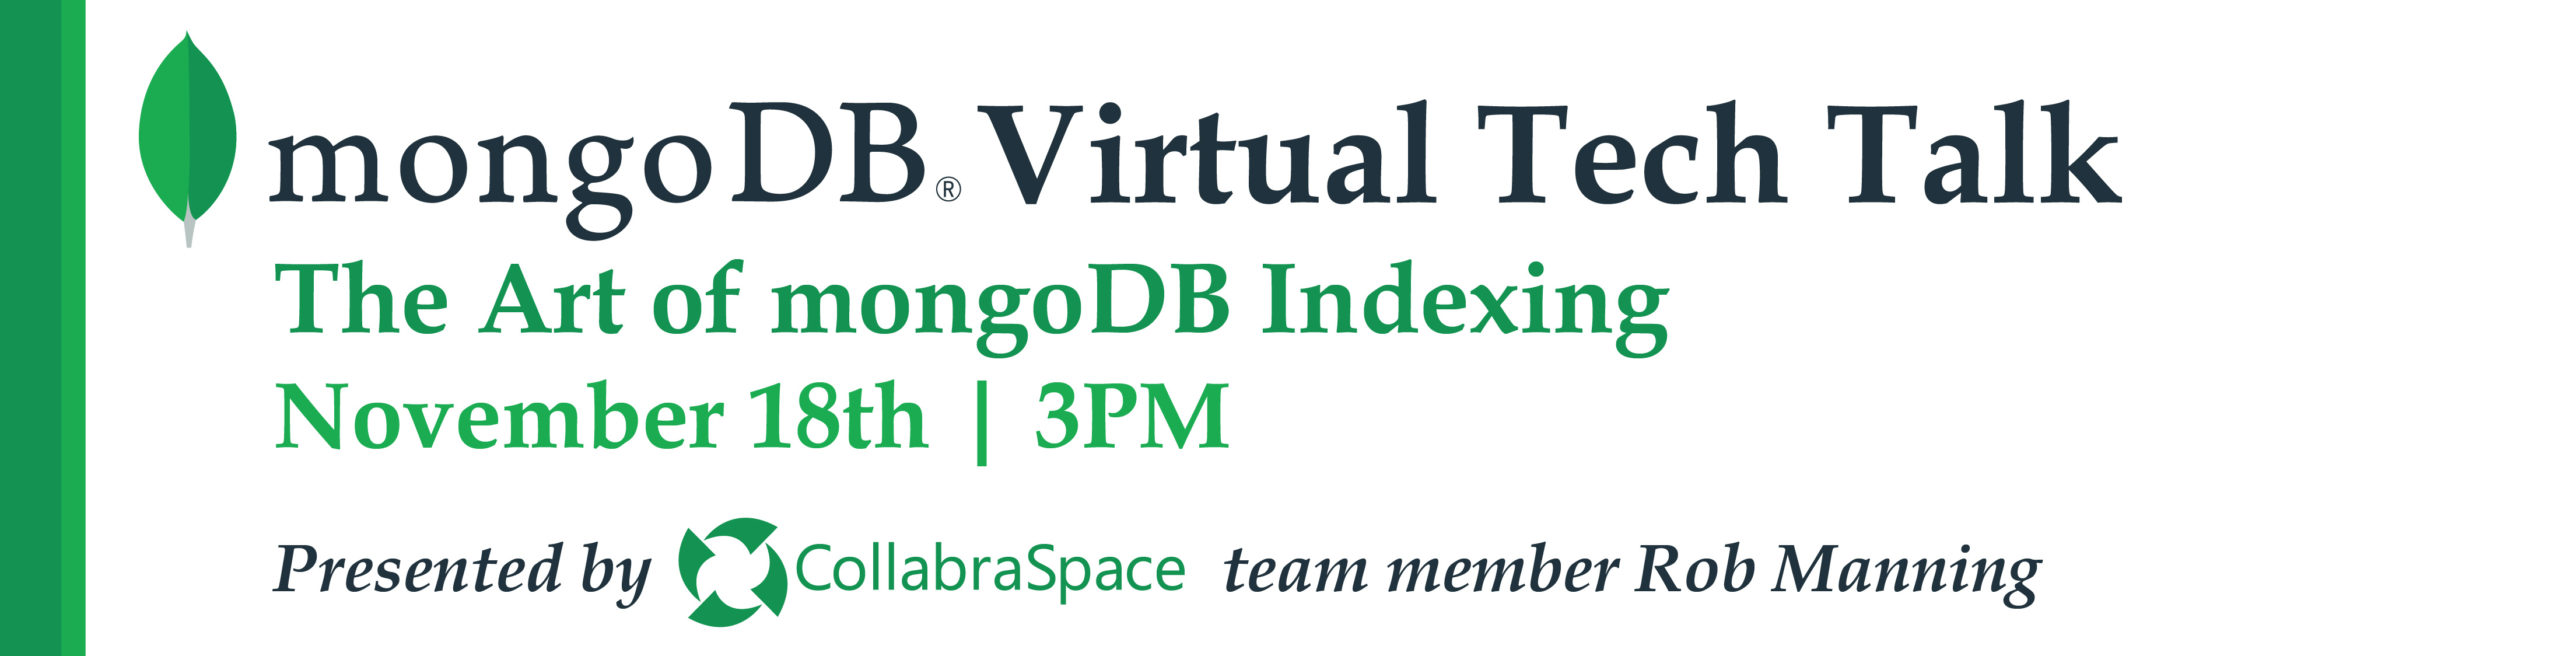 Nov. 18th Virtual Tech Talk: The Art of MongoDB Indexing